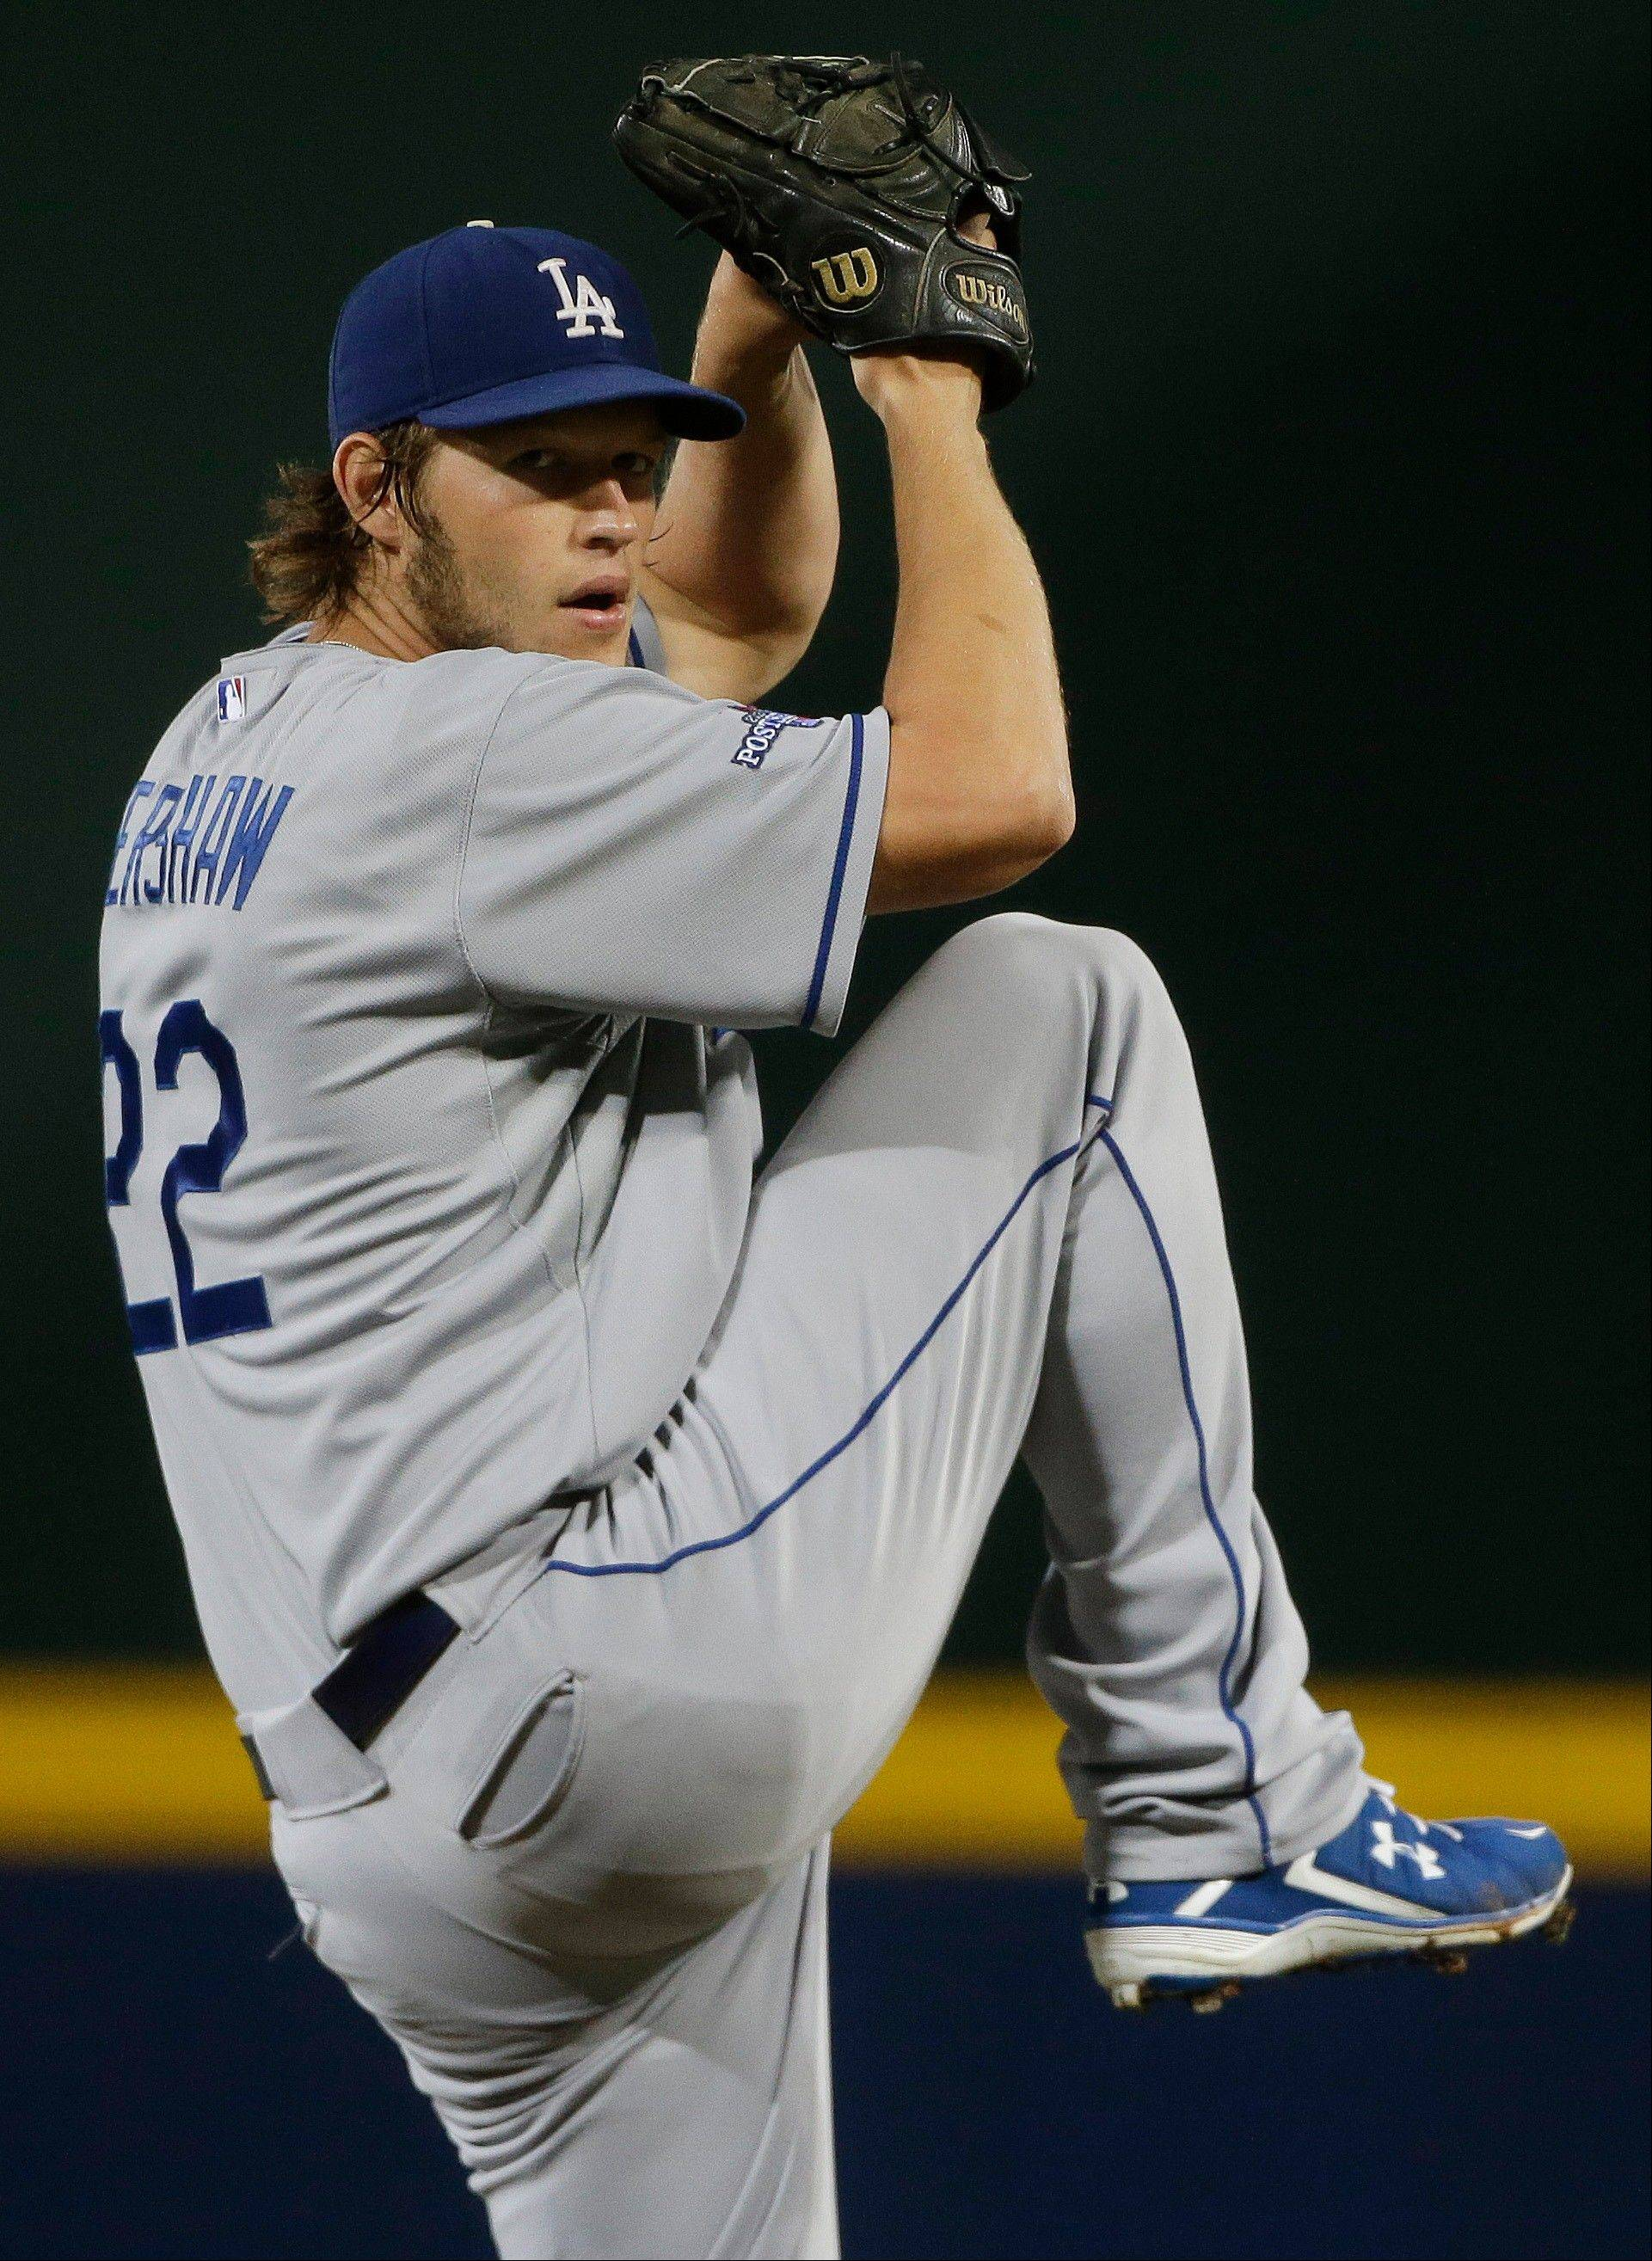 Los Angeles Dodgers starting pitcher Clayton Kershaw works against Atlanta Braves in the first inning of Game 1 of the National League Divisional Series, Thursday, Oct. 3, 2013, in Atlanta. (AP Photo/David Goldman)